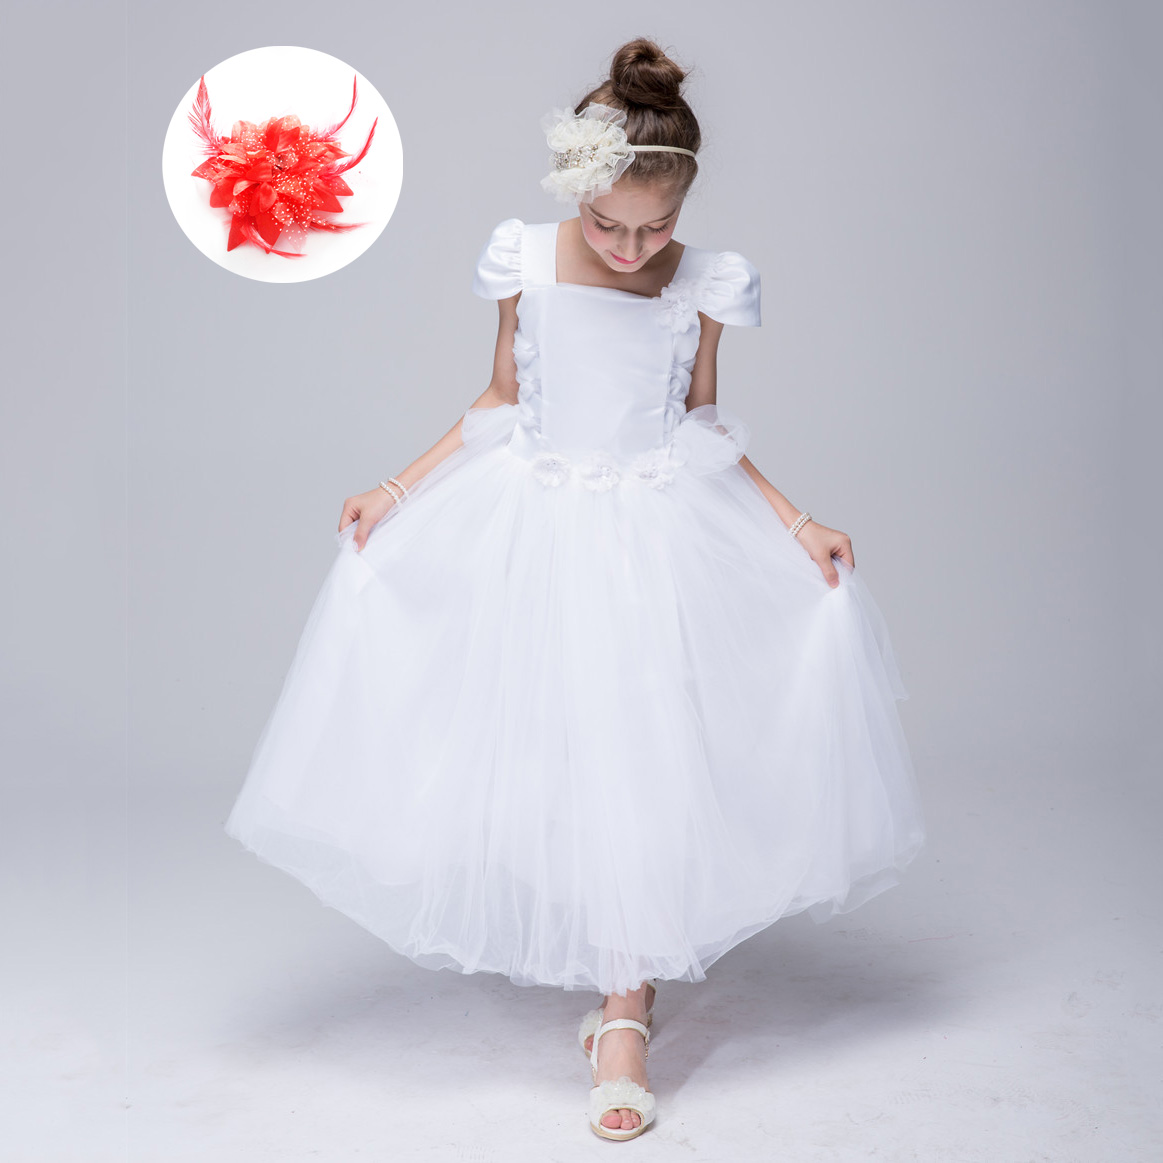 Cap Sleeve Flower Belt Peach Flower Princess Girl Dress Wedding Party Pure White Long Dresses for Kids Vintage Evening Gowns